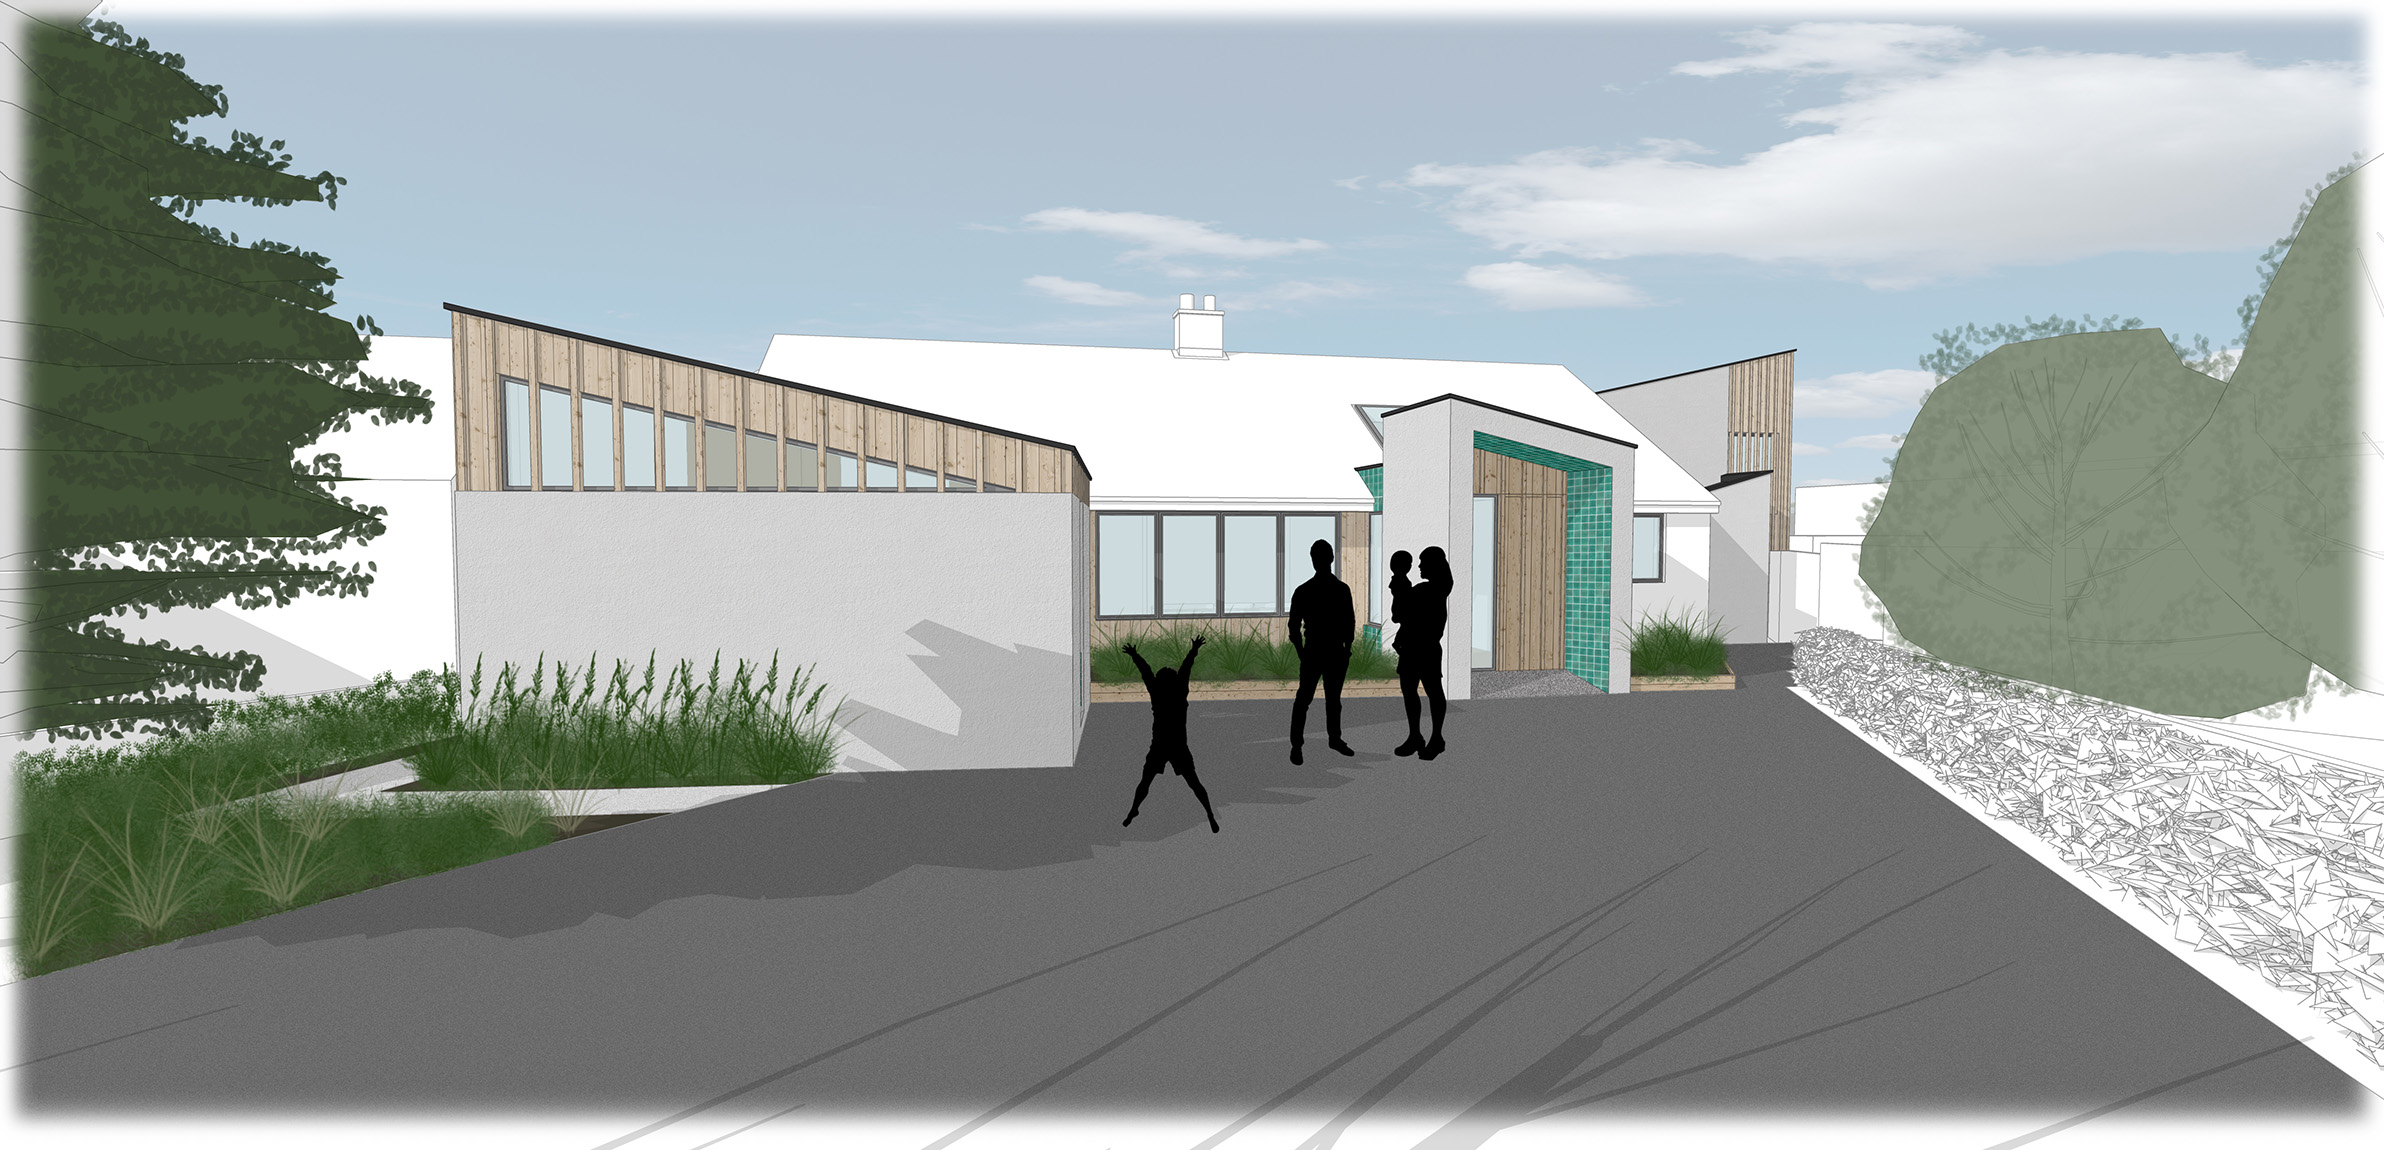 Feasibility Study 3 - Front view